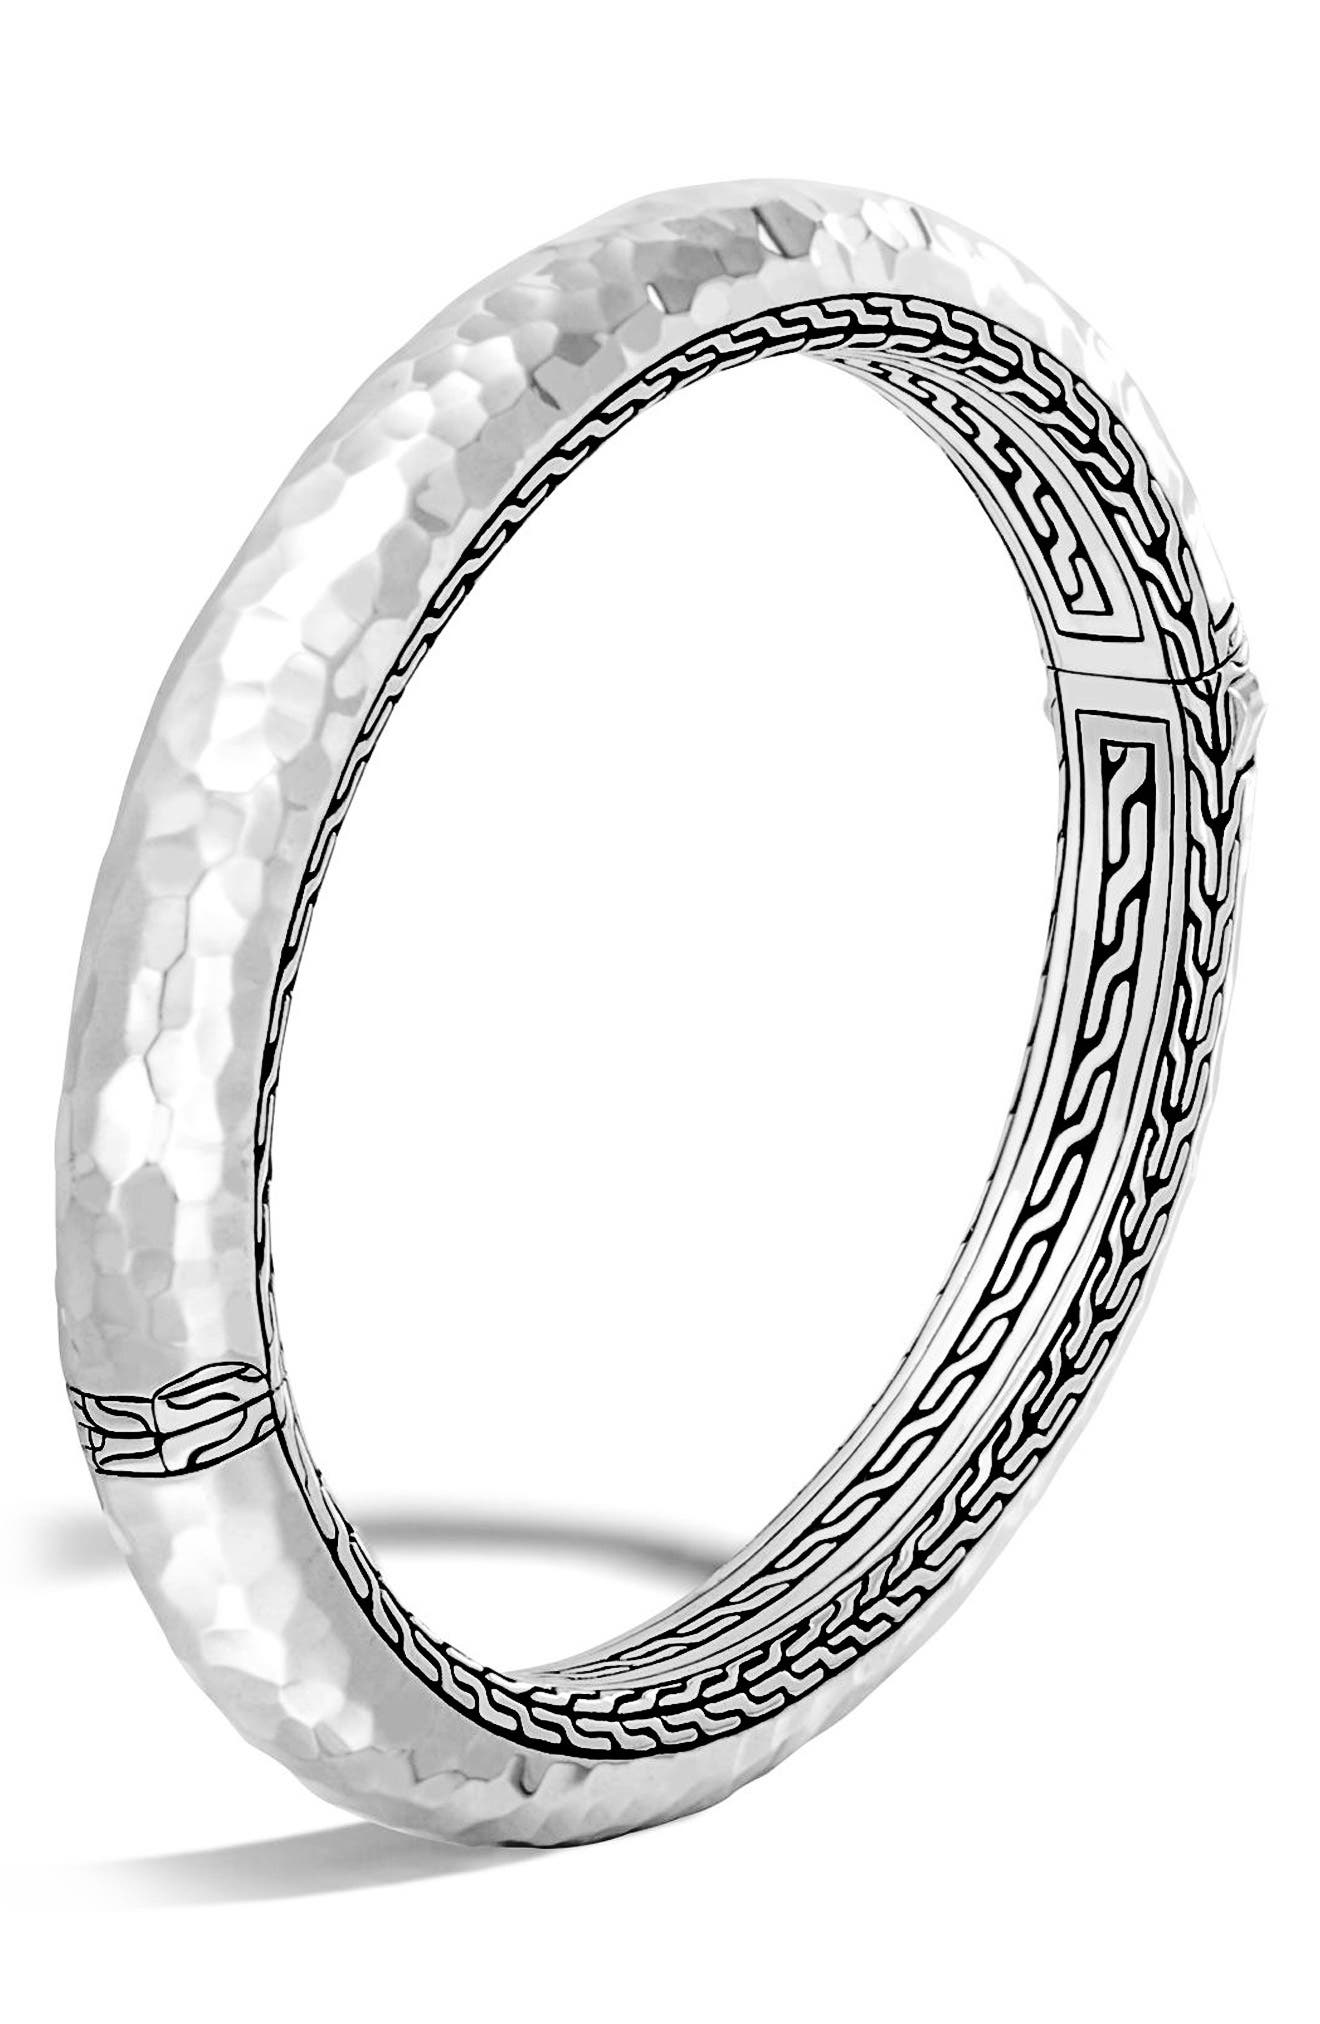 Main Image - John Hardy Classic Chain 8.5mm Hammered Hinged Bangle